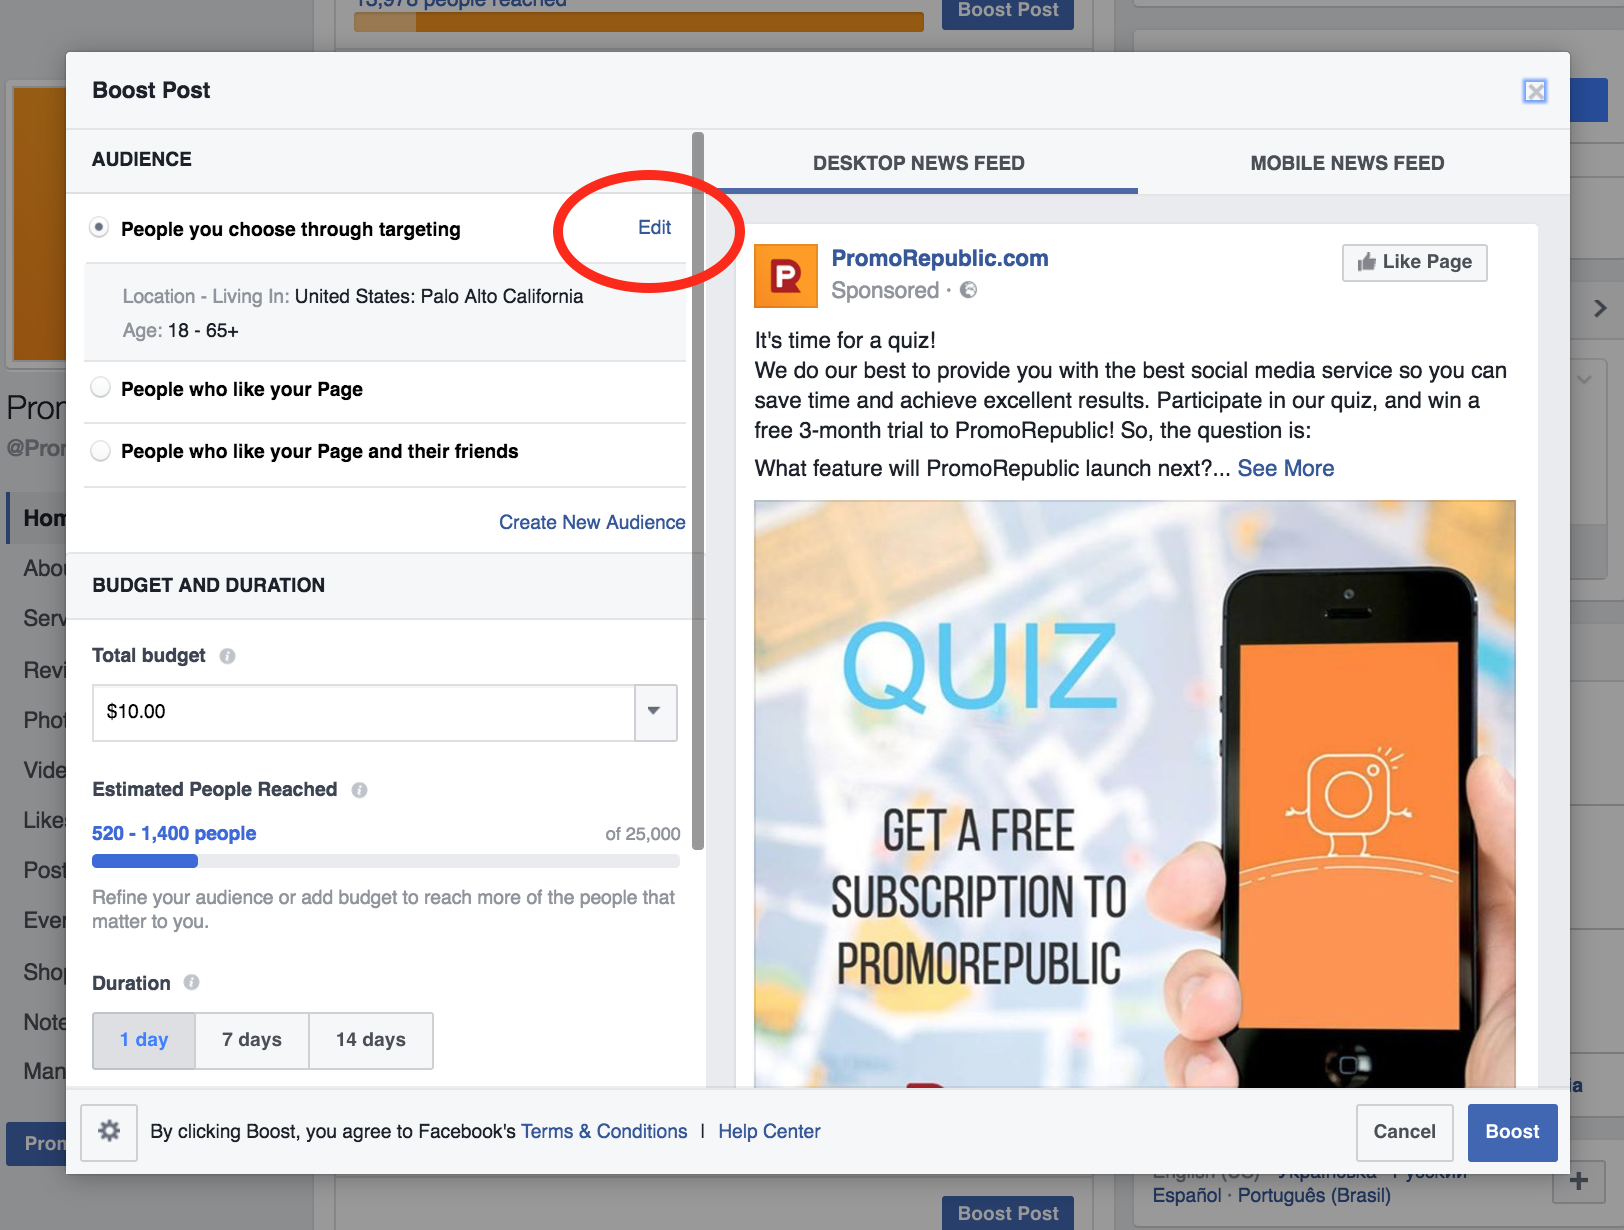 how to choose audience for post boost on Facebook